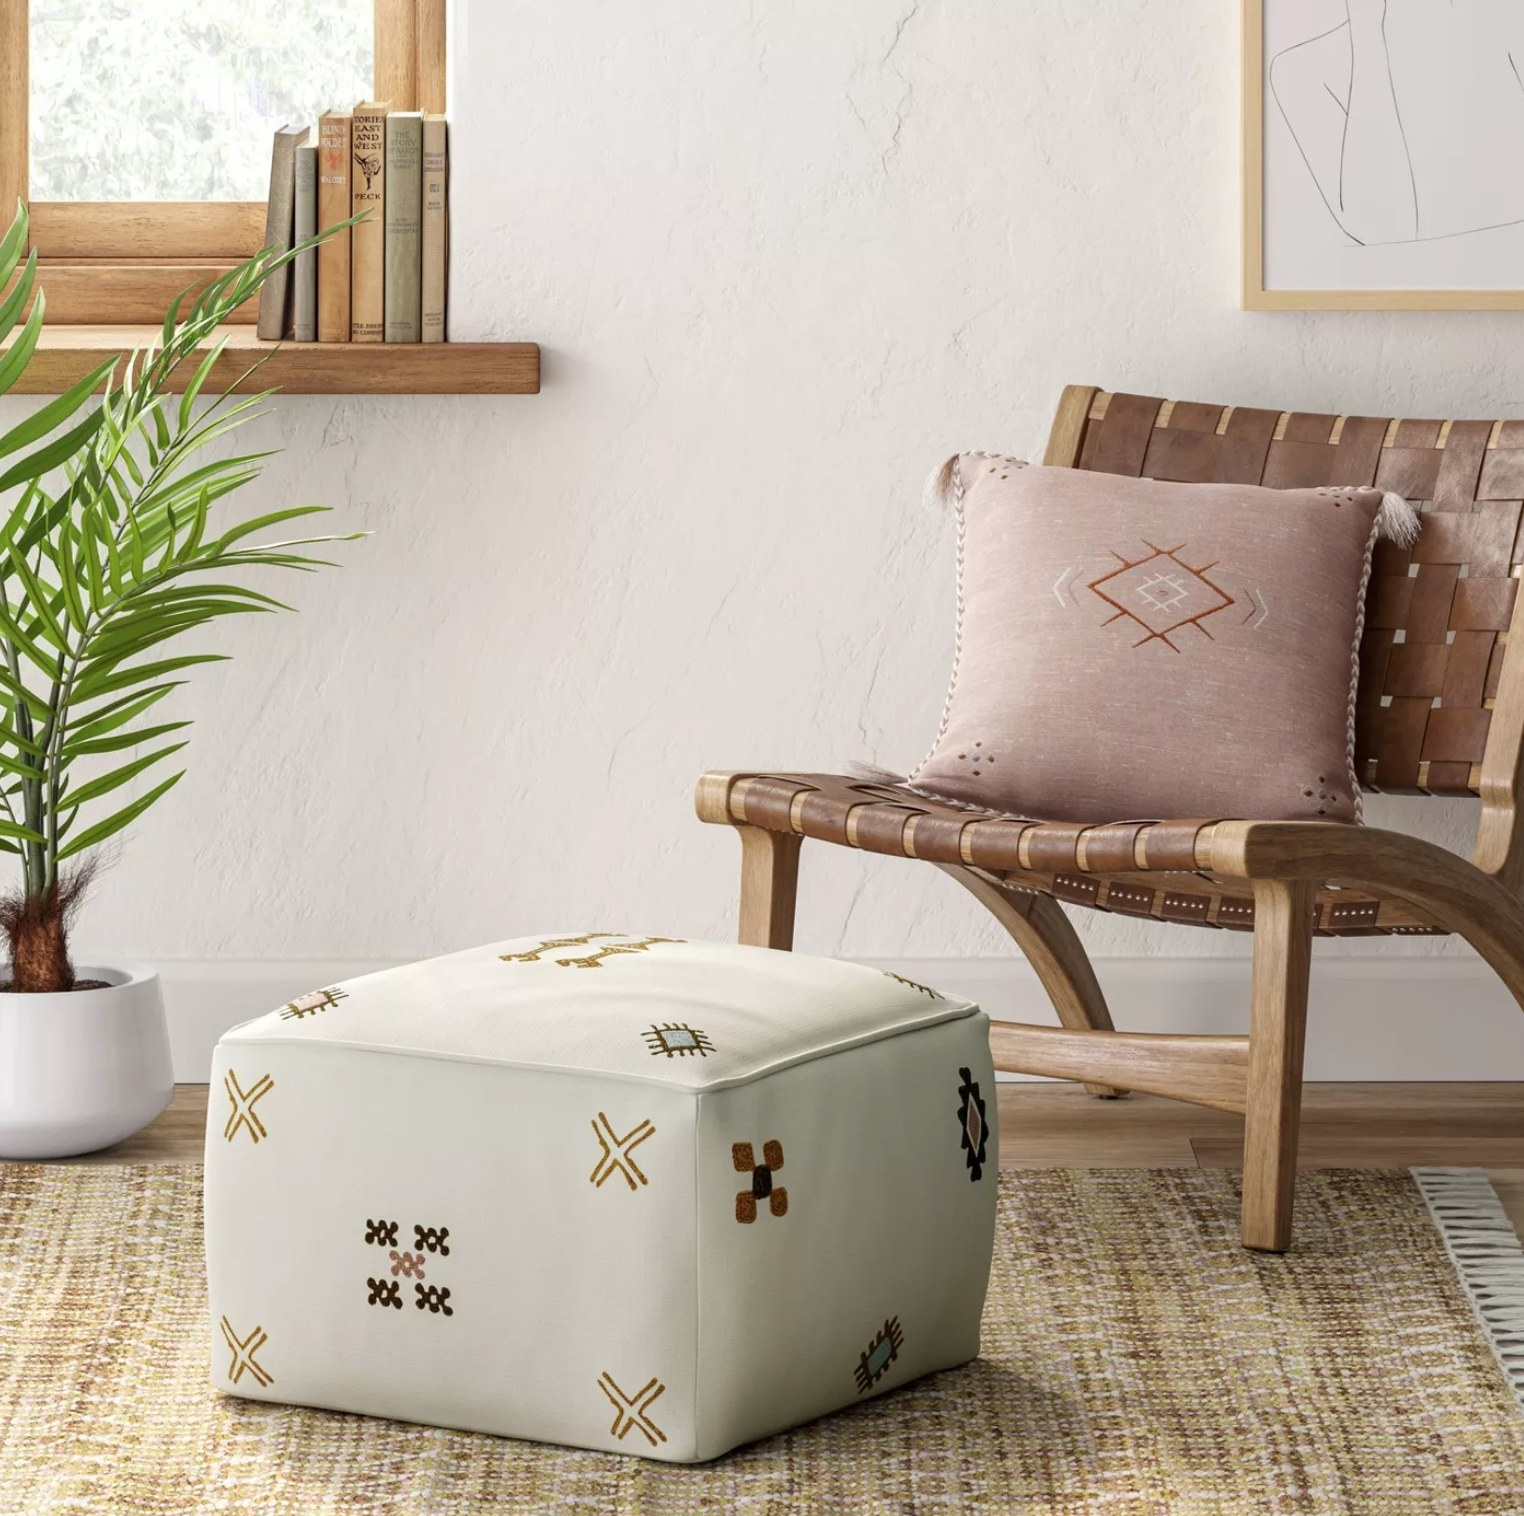 the cream pouf with brown designs in front of a chair with a pink pillow